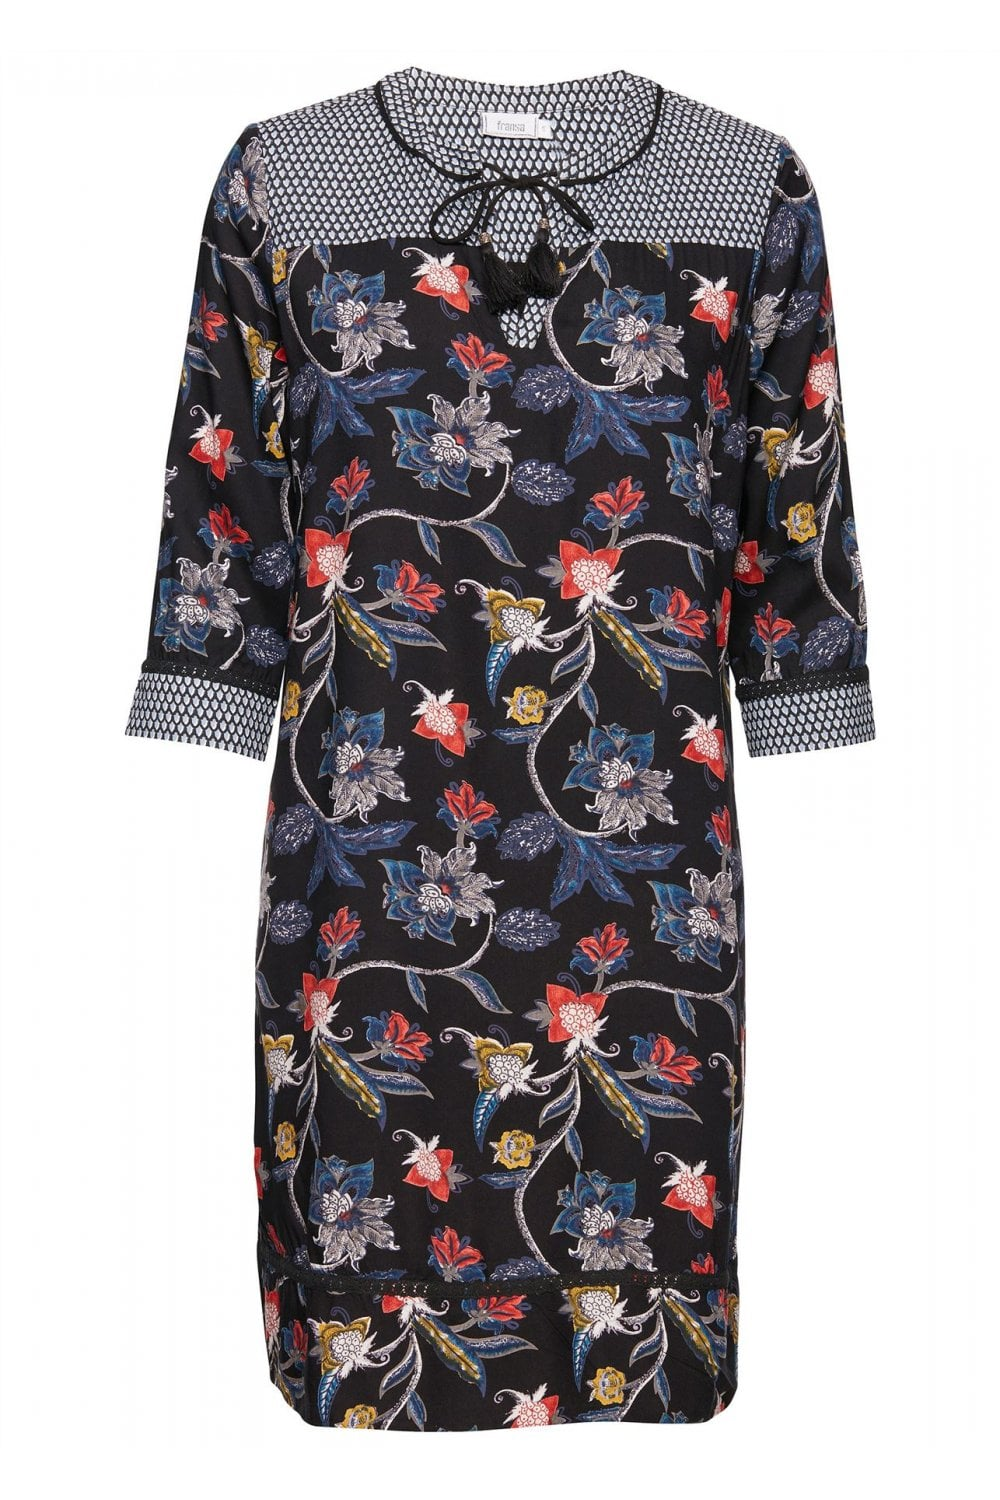 c5883c58a7b4 Fransa Isotta 1 Dress - Womenswear from Potters of Buxton UK